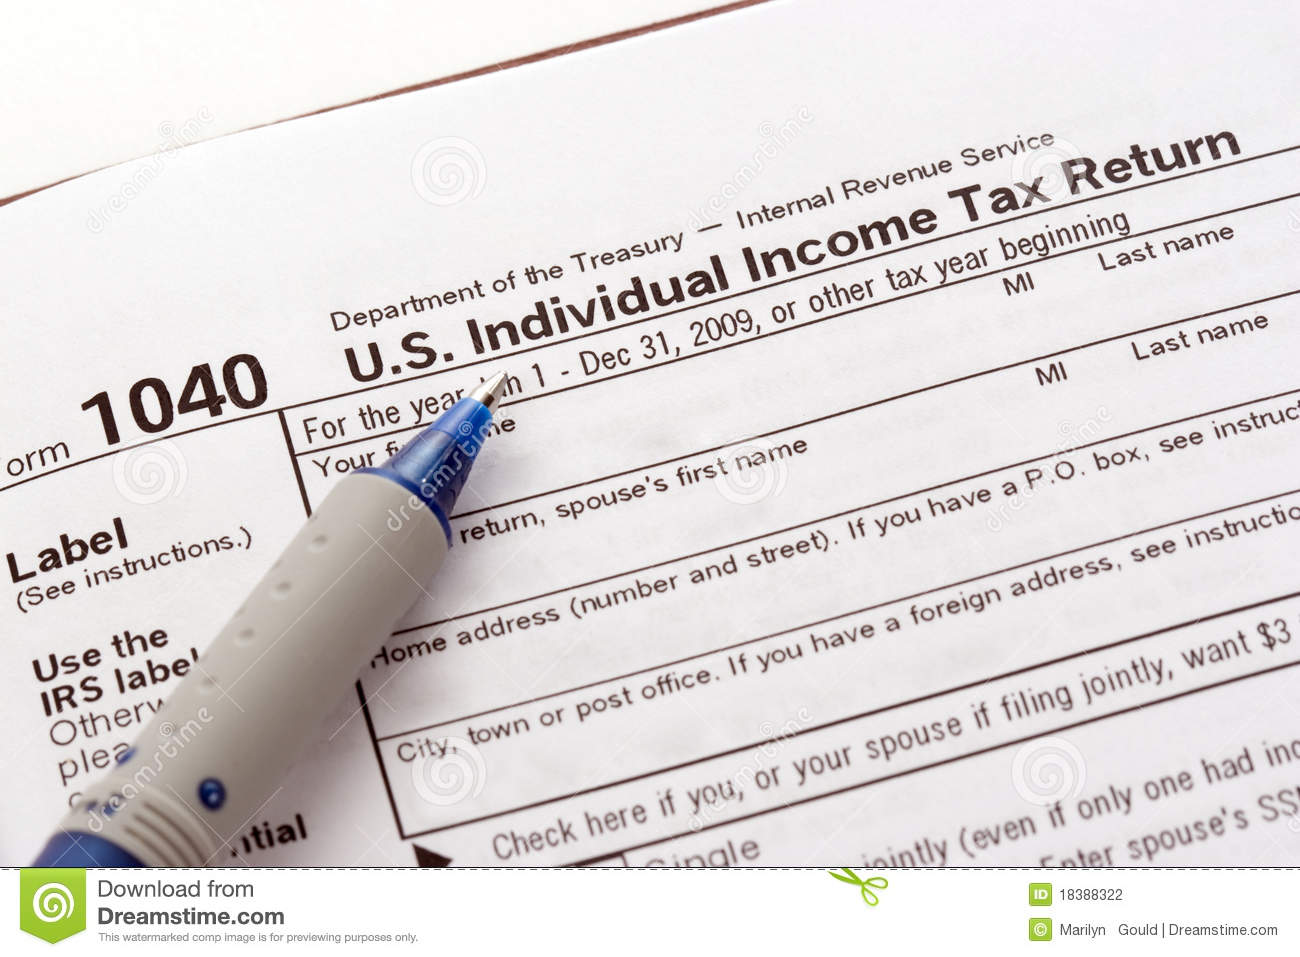 how to view tax return